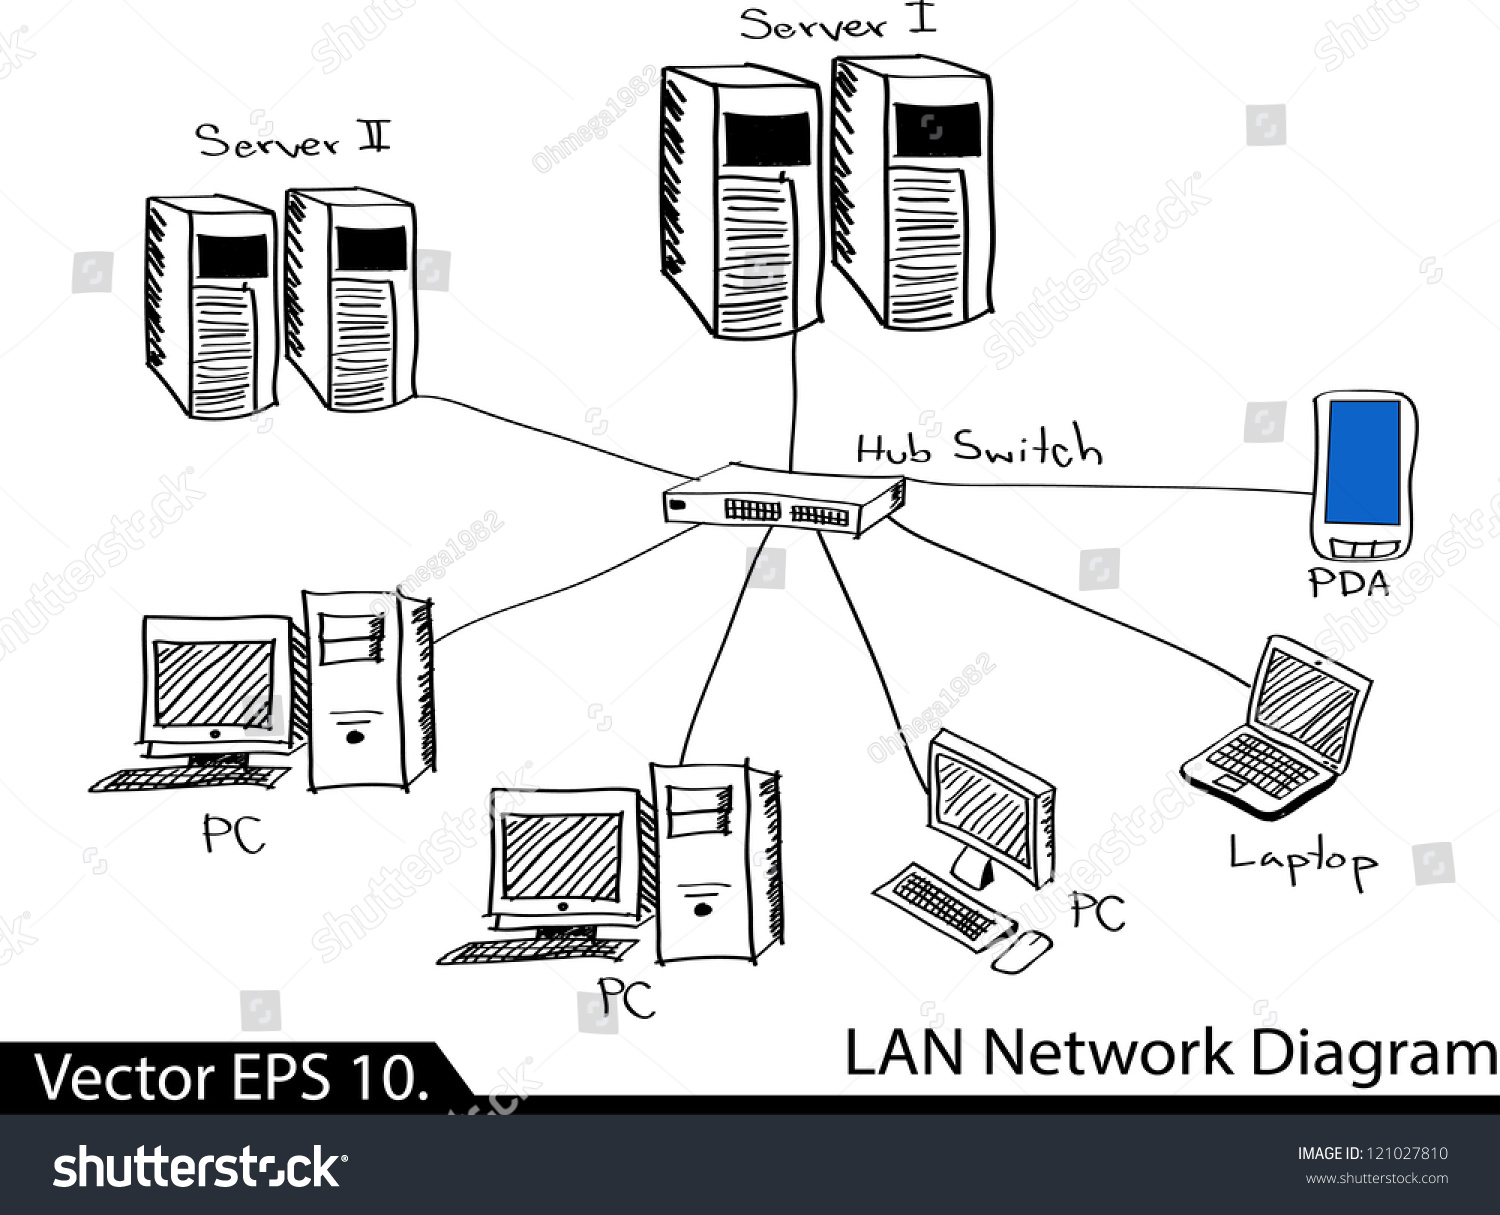 ids network diagram trailer hitches lan vector illustrator sketched stock